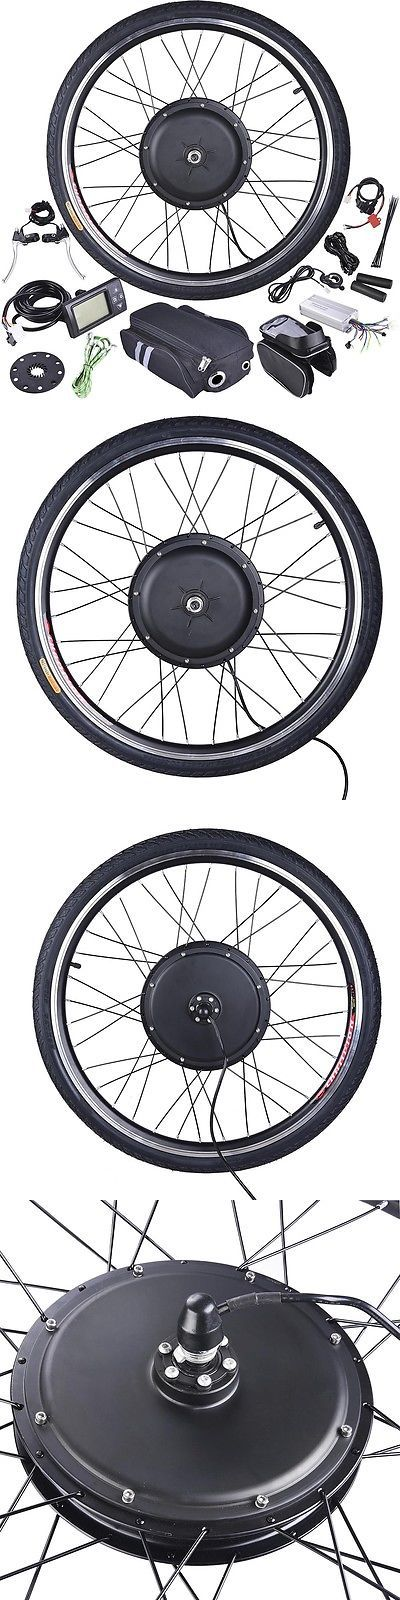 Electric Bicycles 74469: 48V1000w Ebike Front 26 Electric Bicycle Wheel W/Tire Motor Conversion Lcd Kit -> BUY IT NOW ONLY: $209.9 on eBay!